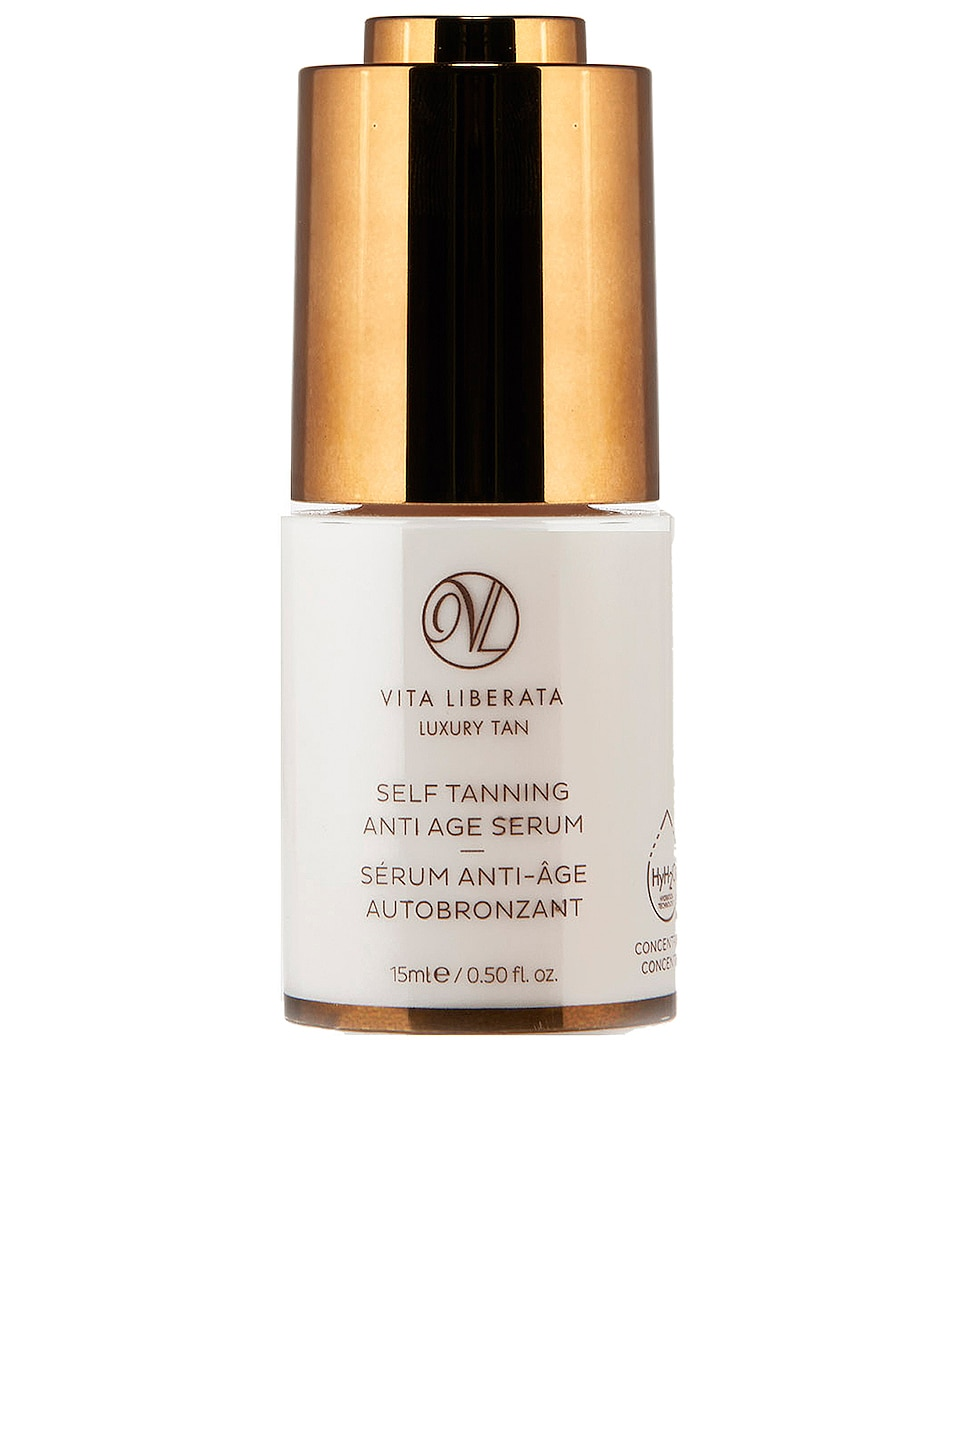 Vita Liberata Anti Age Self Tanning Serum